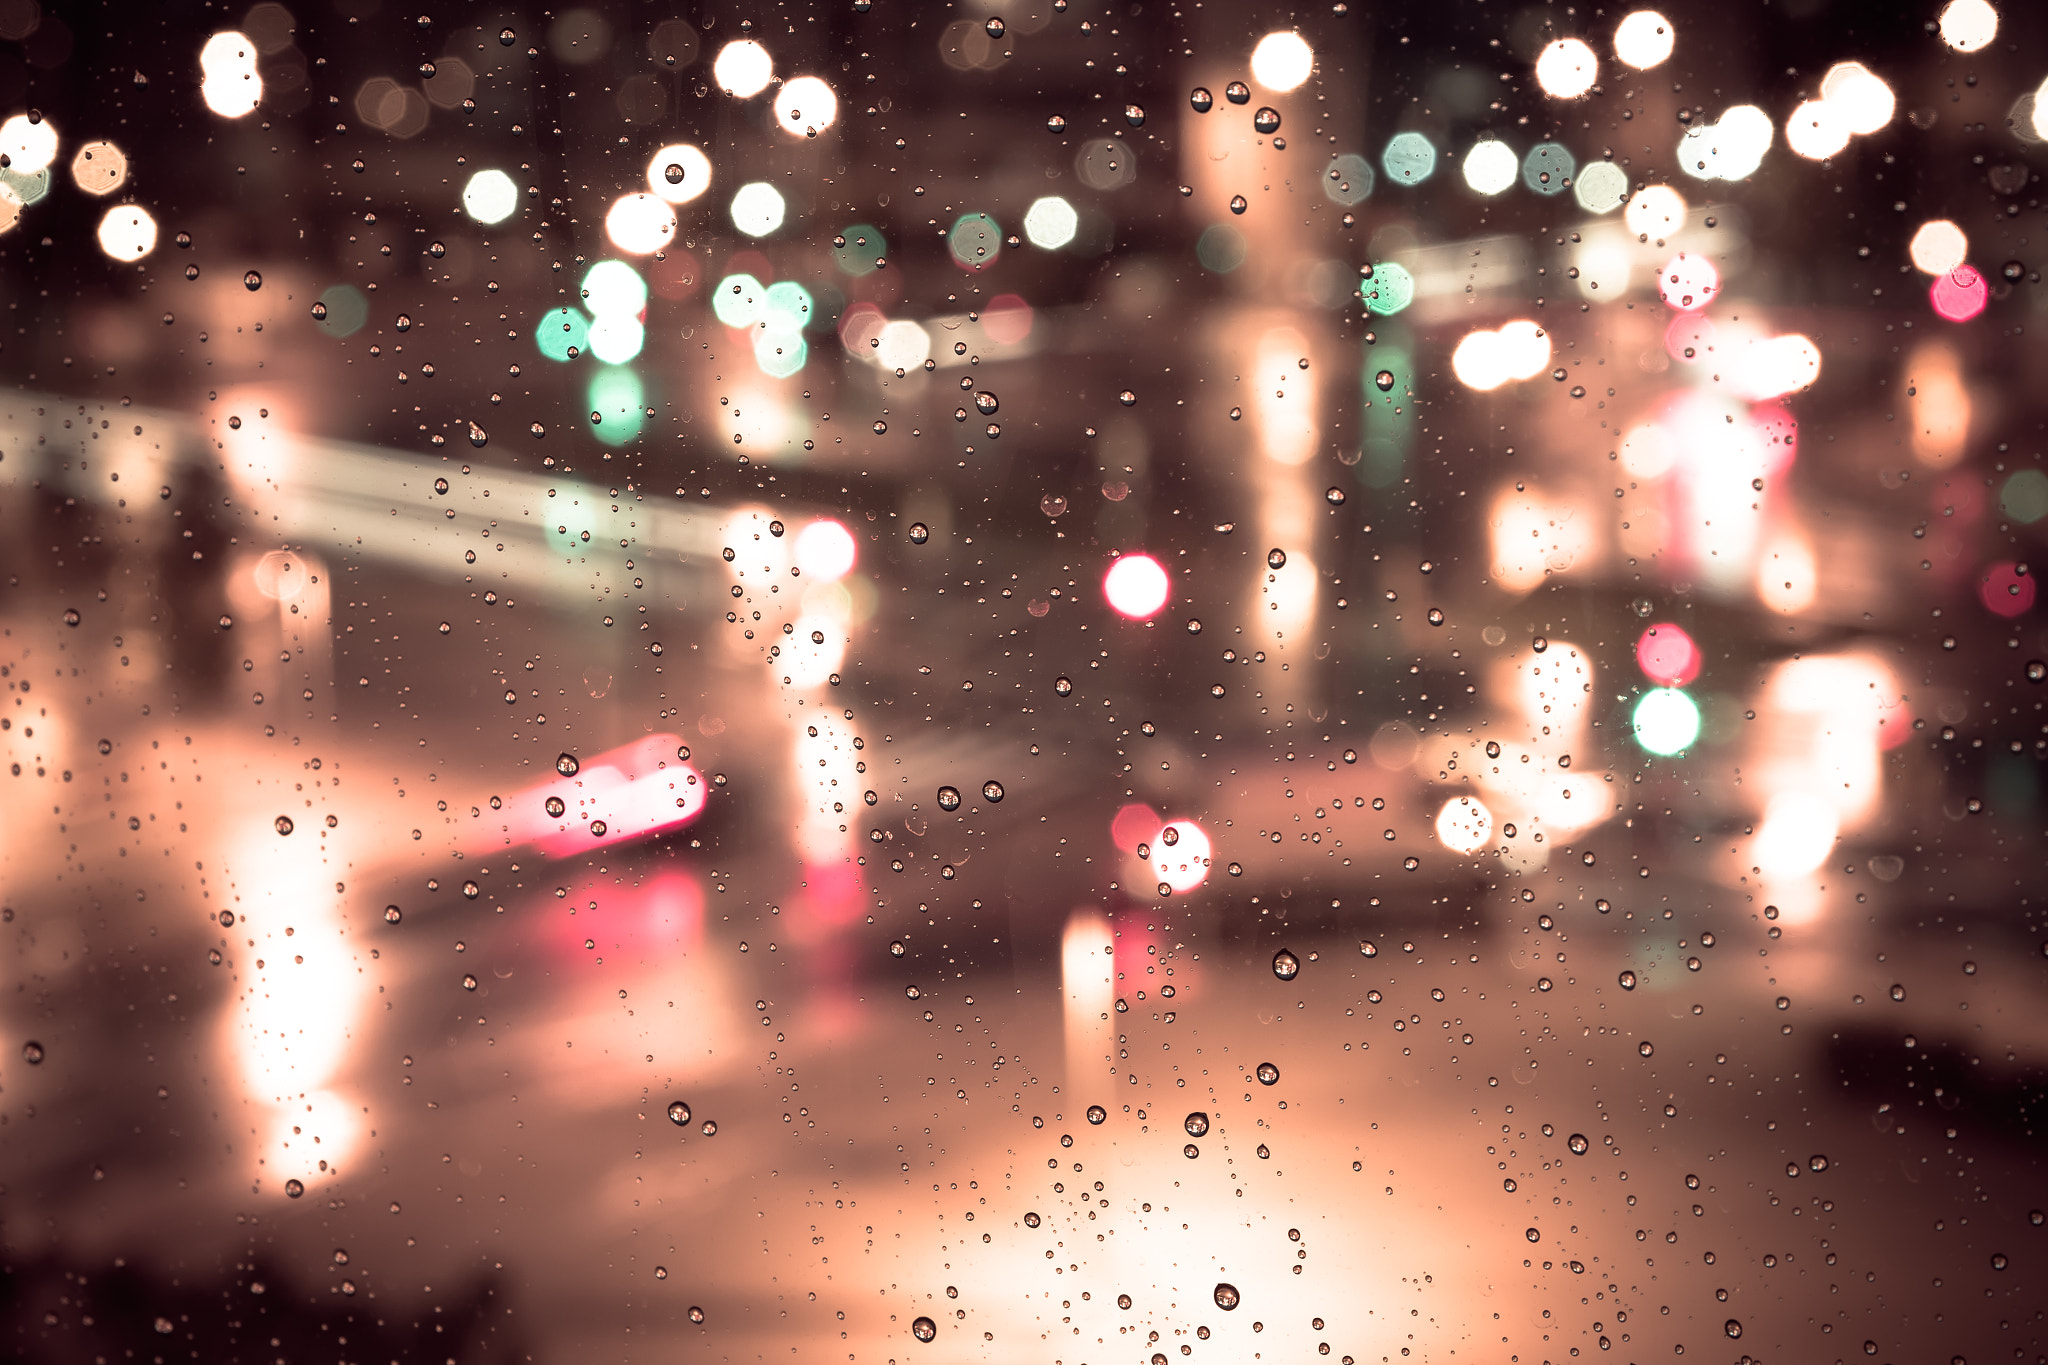 Photograph Rainy bokeh by José González on 500px